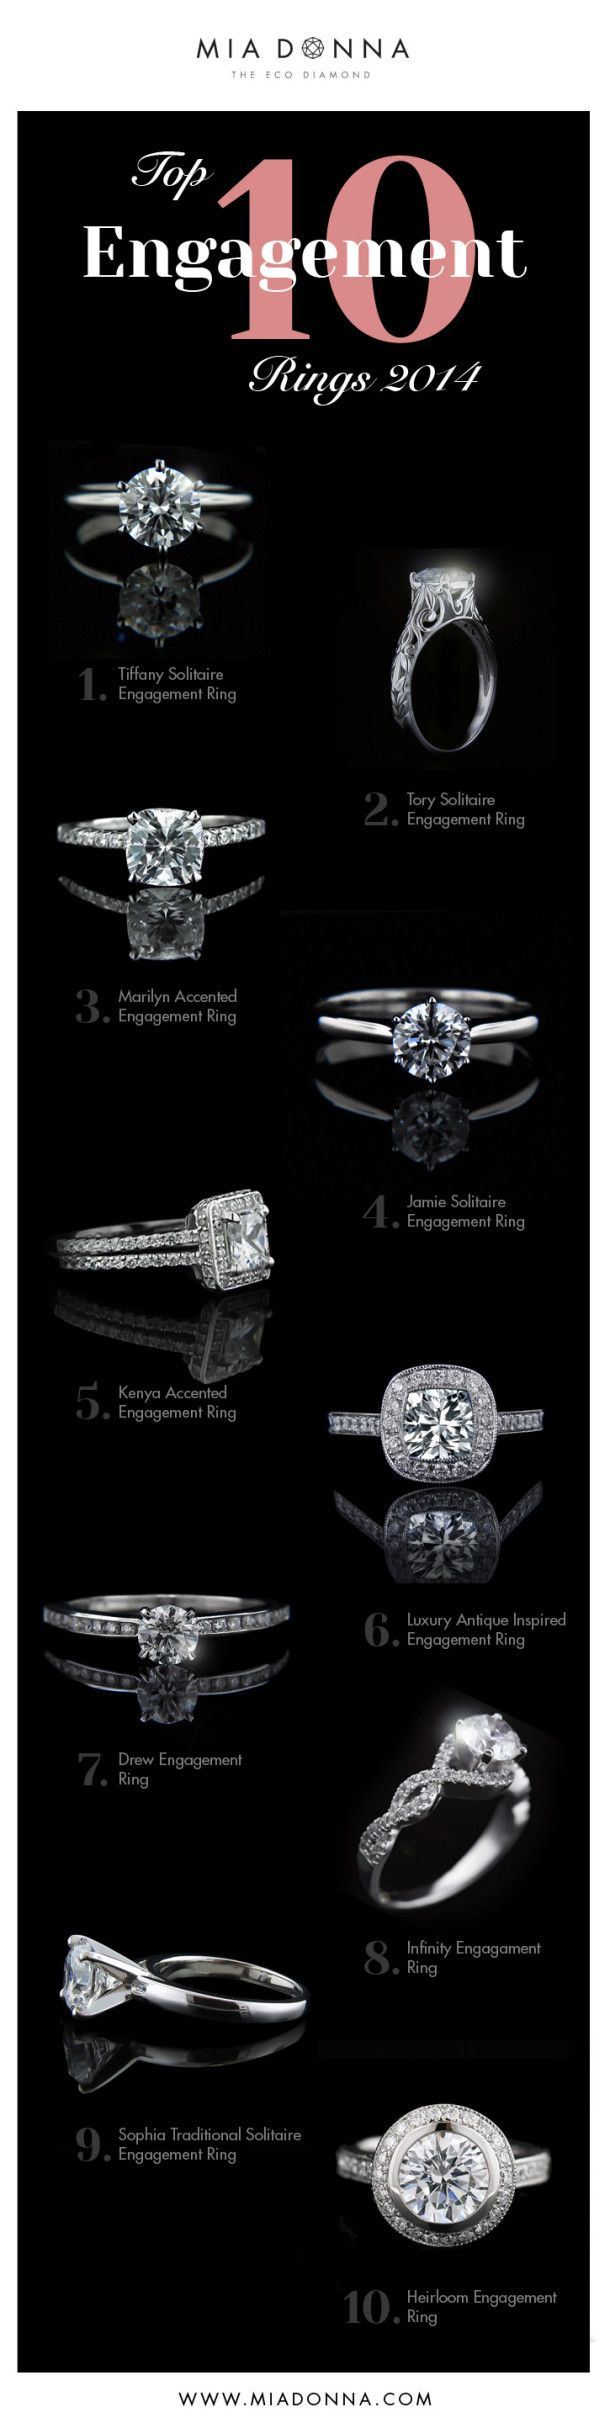 Top 10 best selling MiaDonna Engagement Rings 2014